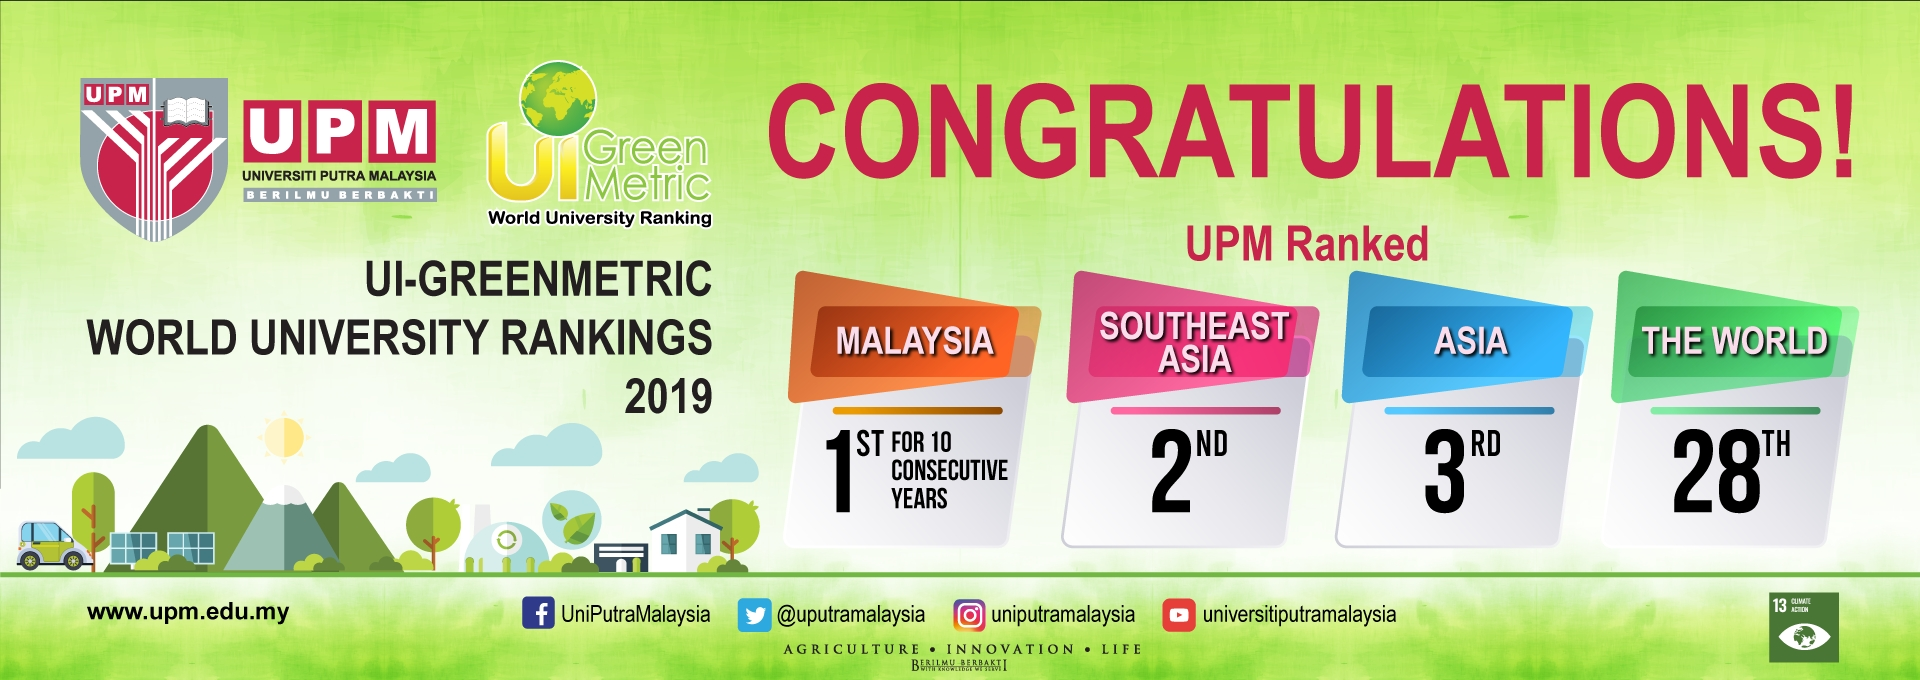 PENCAPAIAN UI-GREENMETRIC WORLD UNIVERSITY RANKING 2019